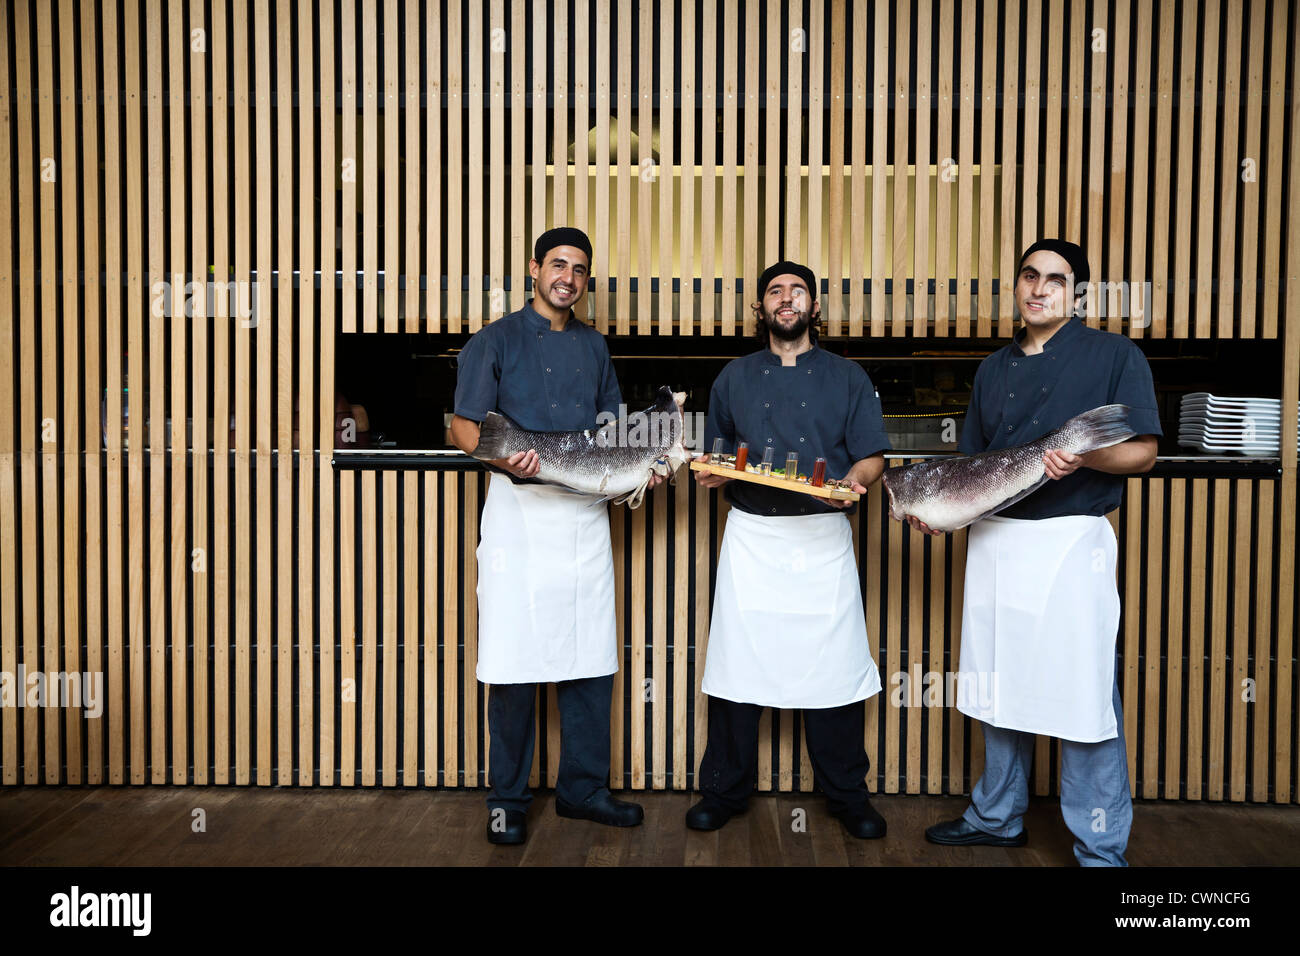 The cooks at Olsen Restaurant, Palermo Hollywood, Buenos Aires, Argentina. - Stock Image